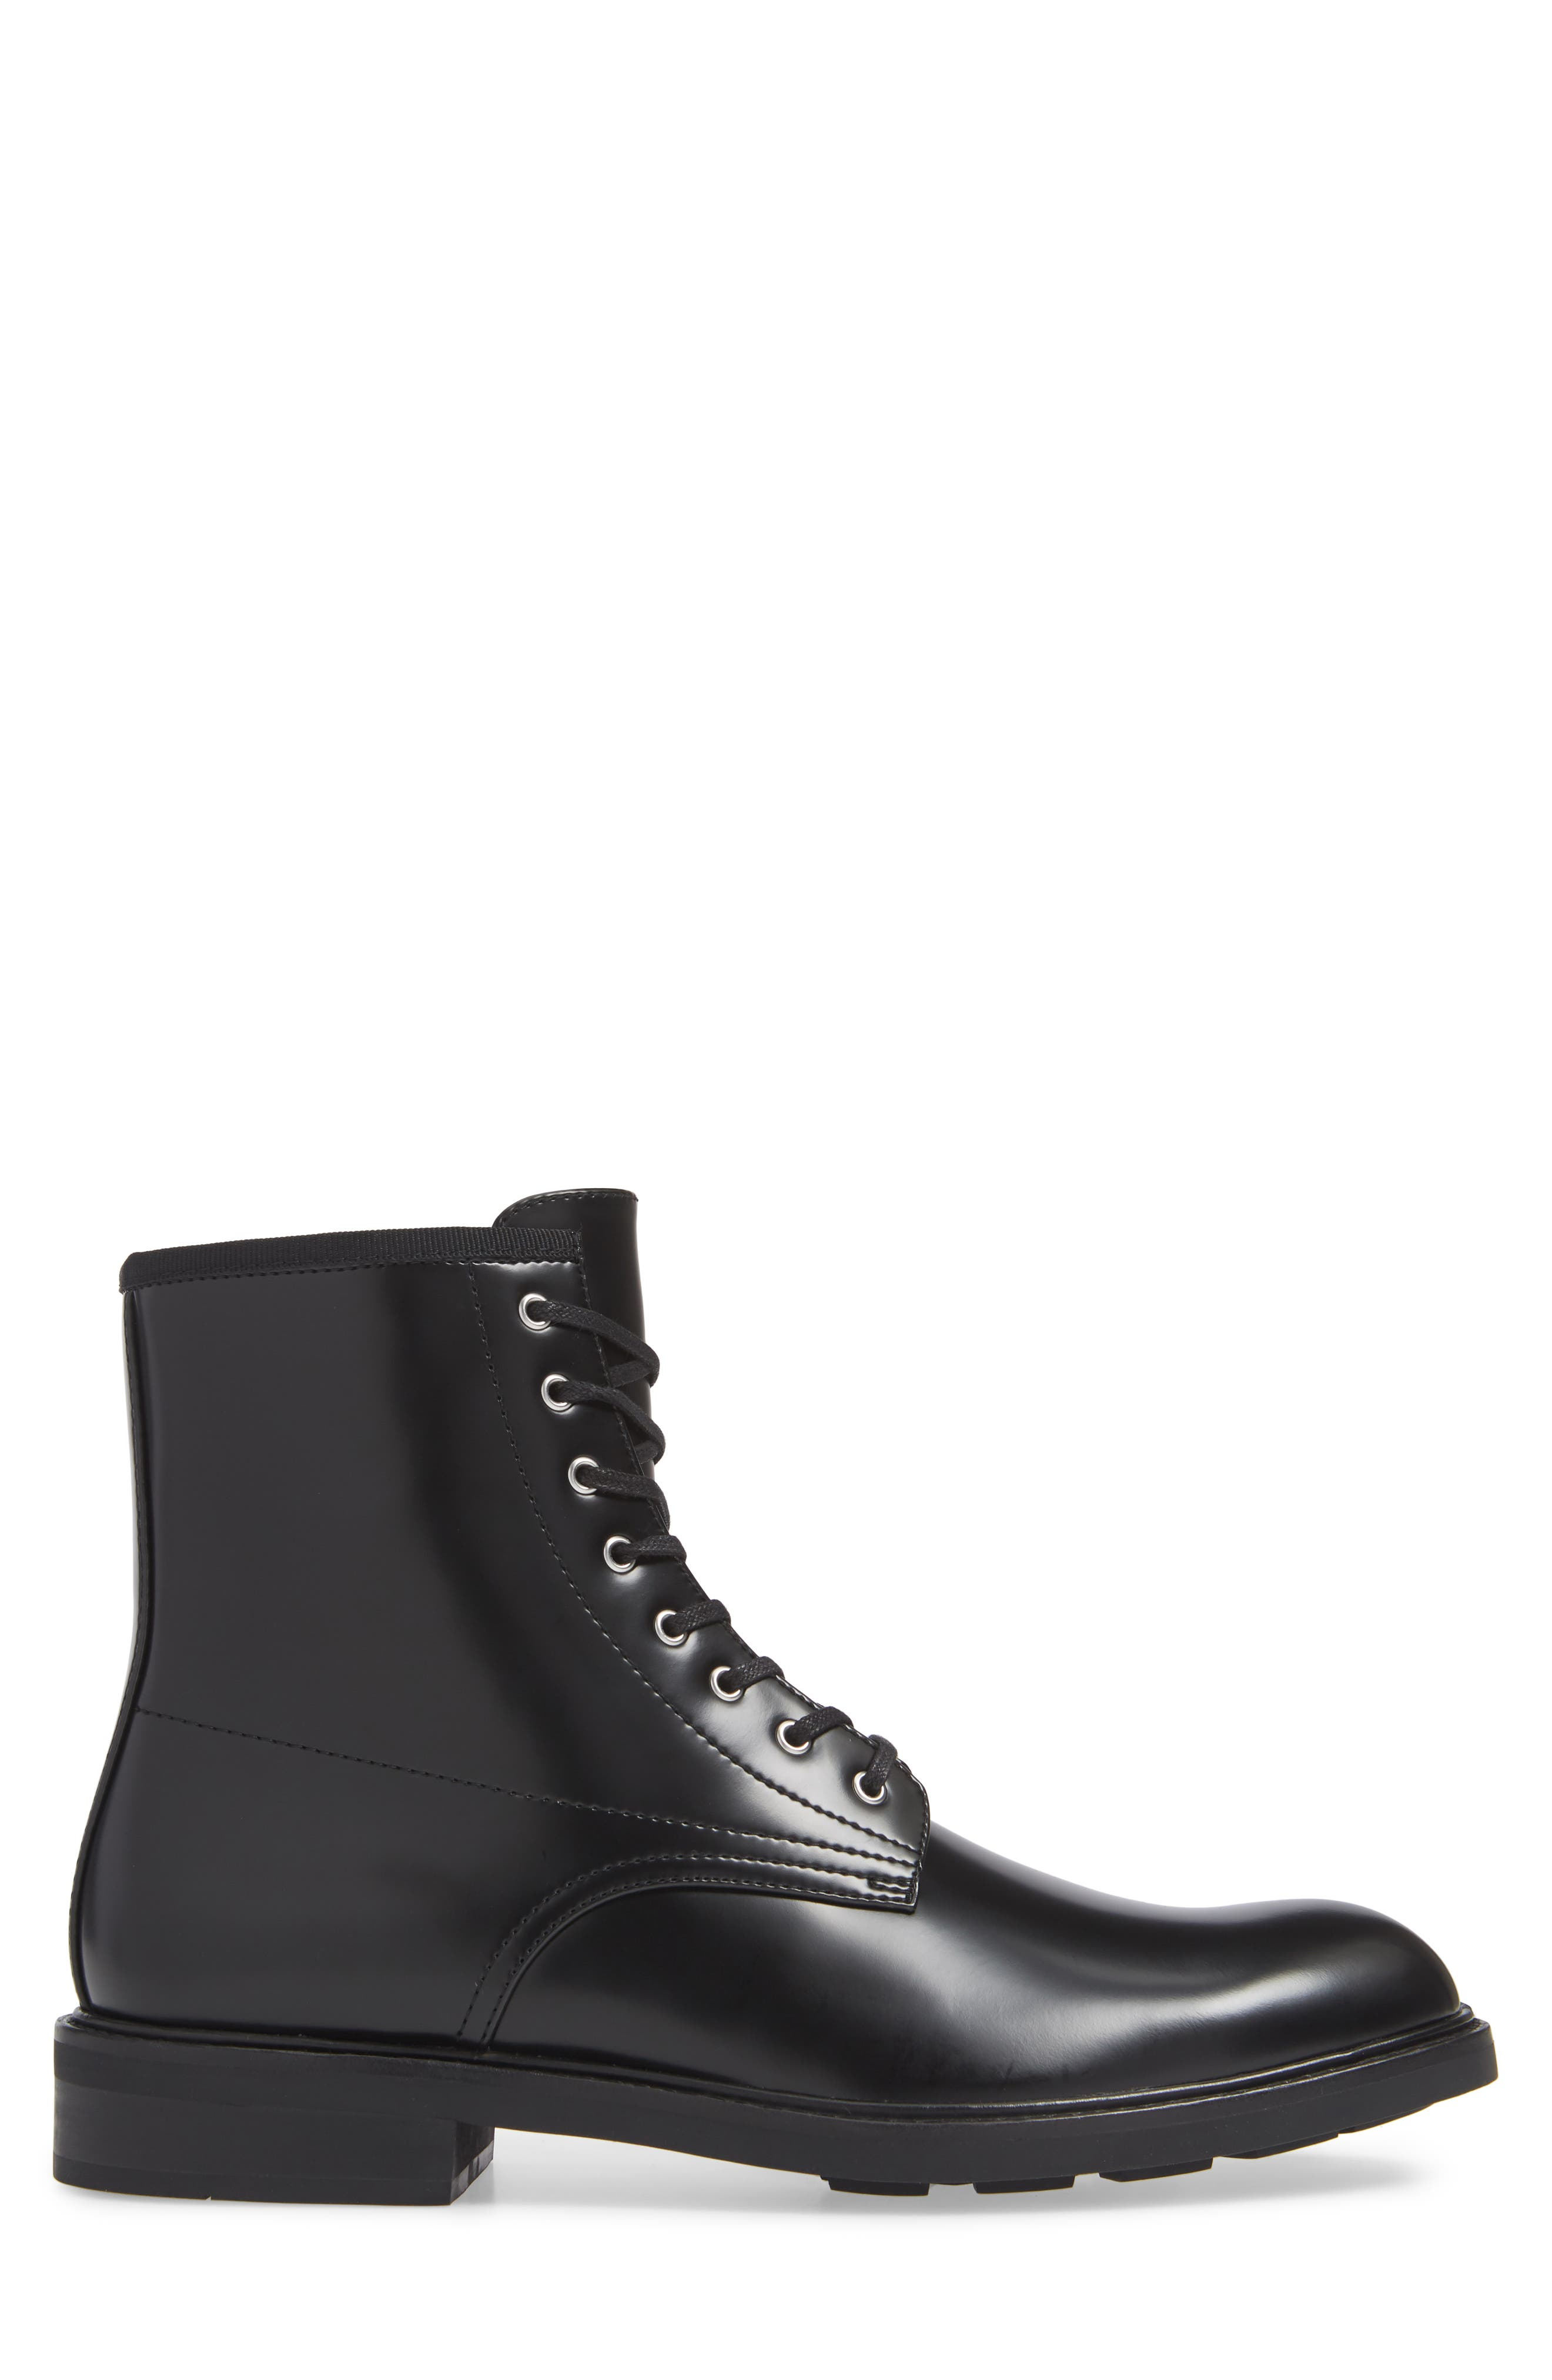 Keeler Combat Boot,                             Alternate thumbnail 3, color,                             BLACK LEATHER